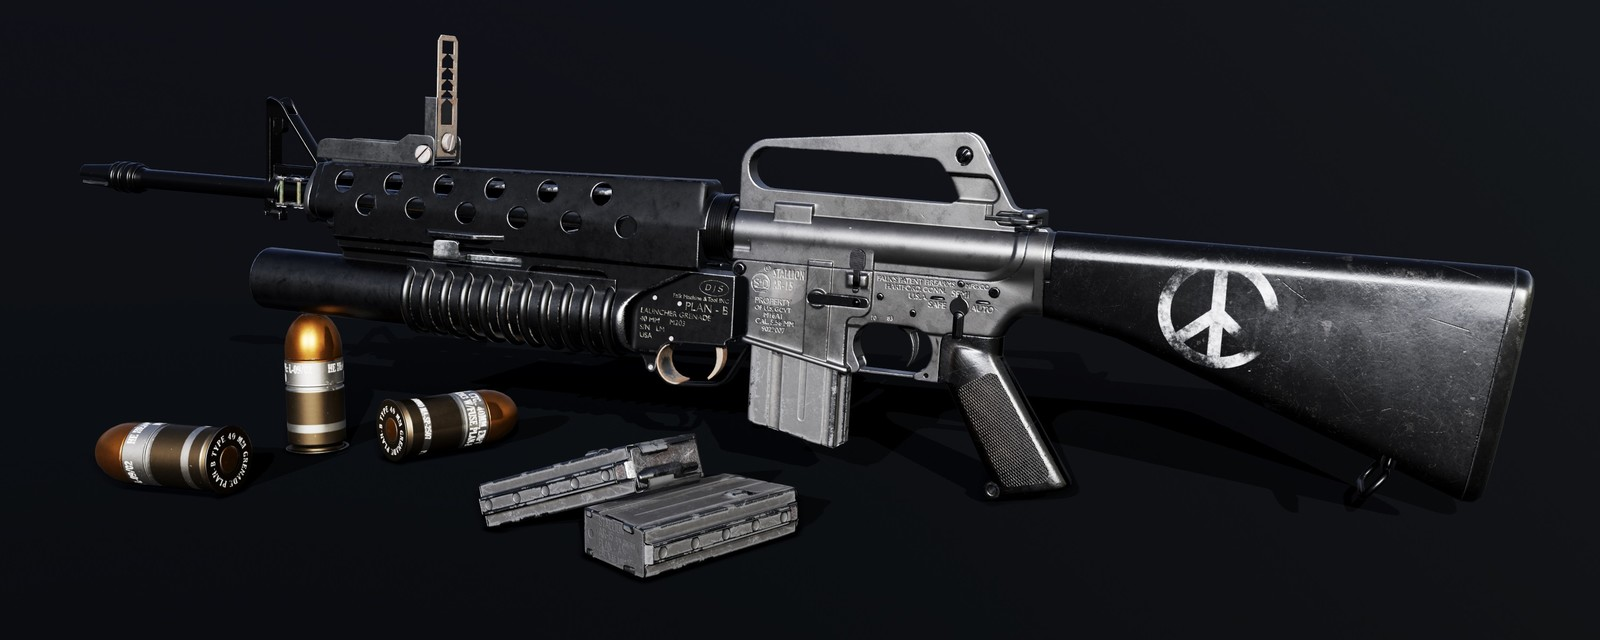 M16A1 with M203 Grenade Launcher